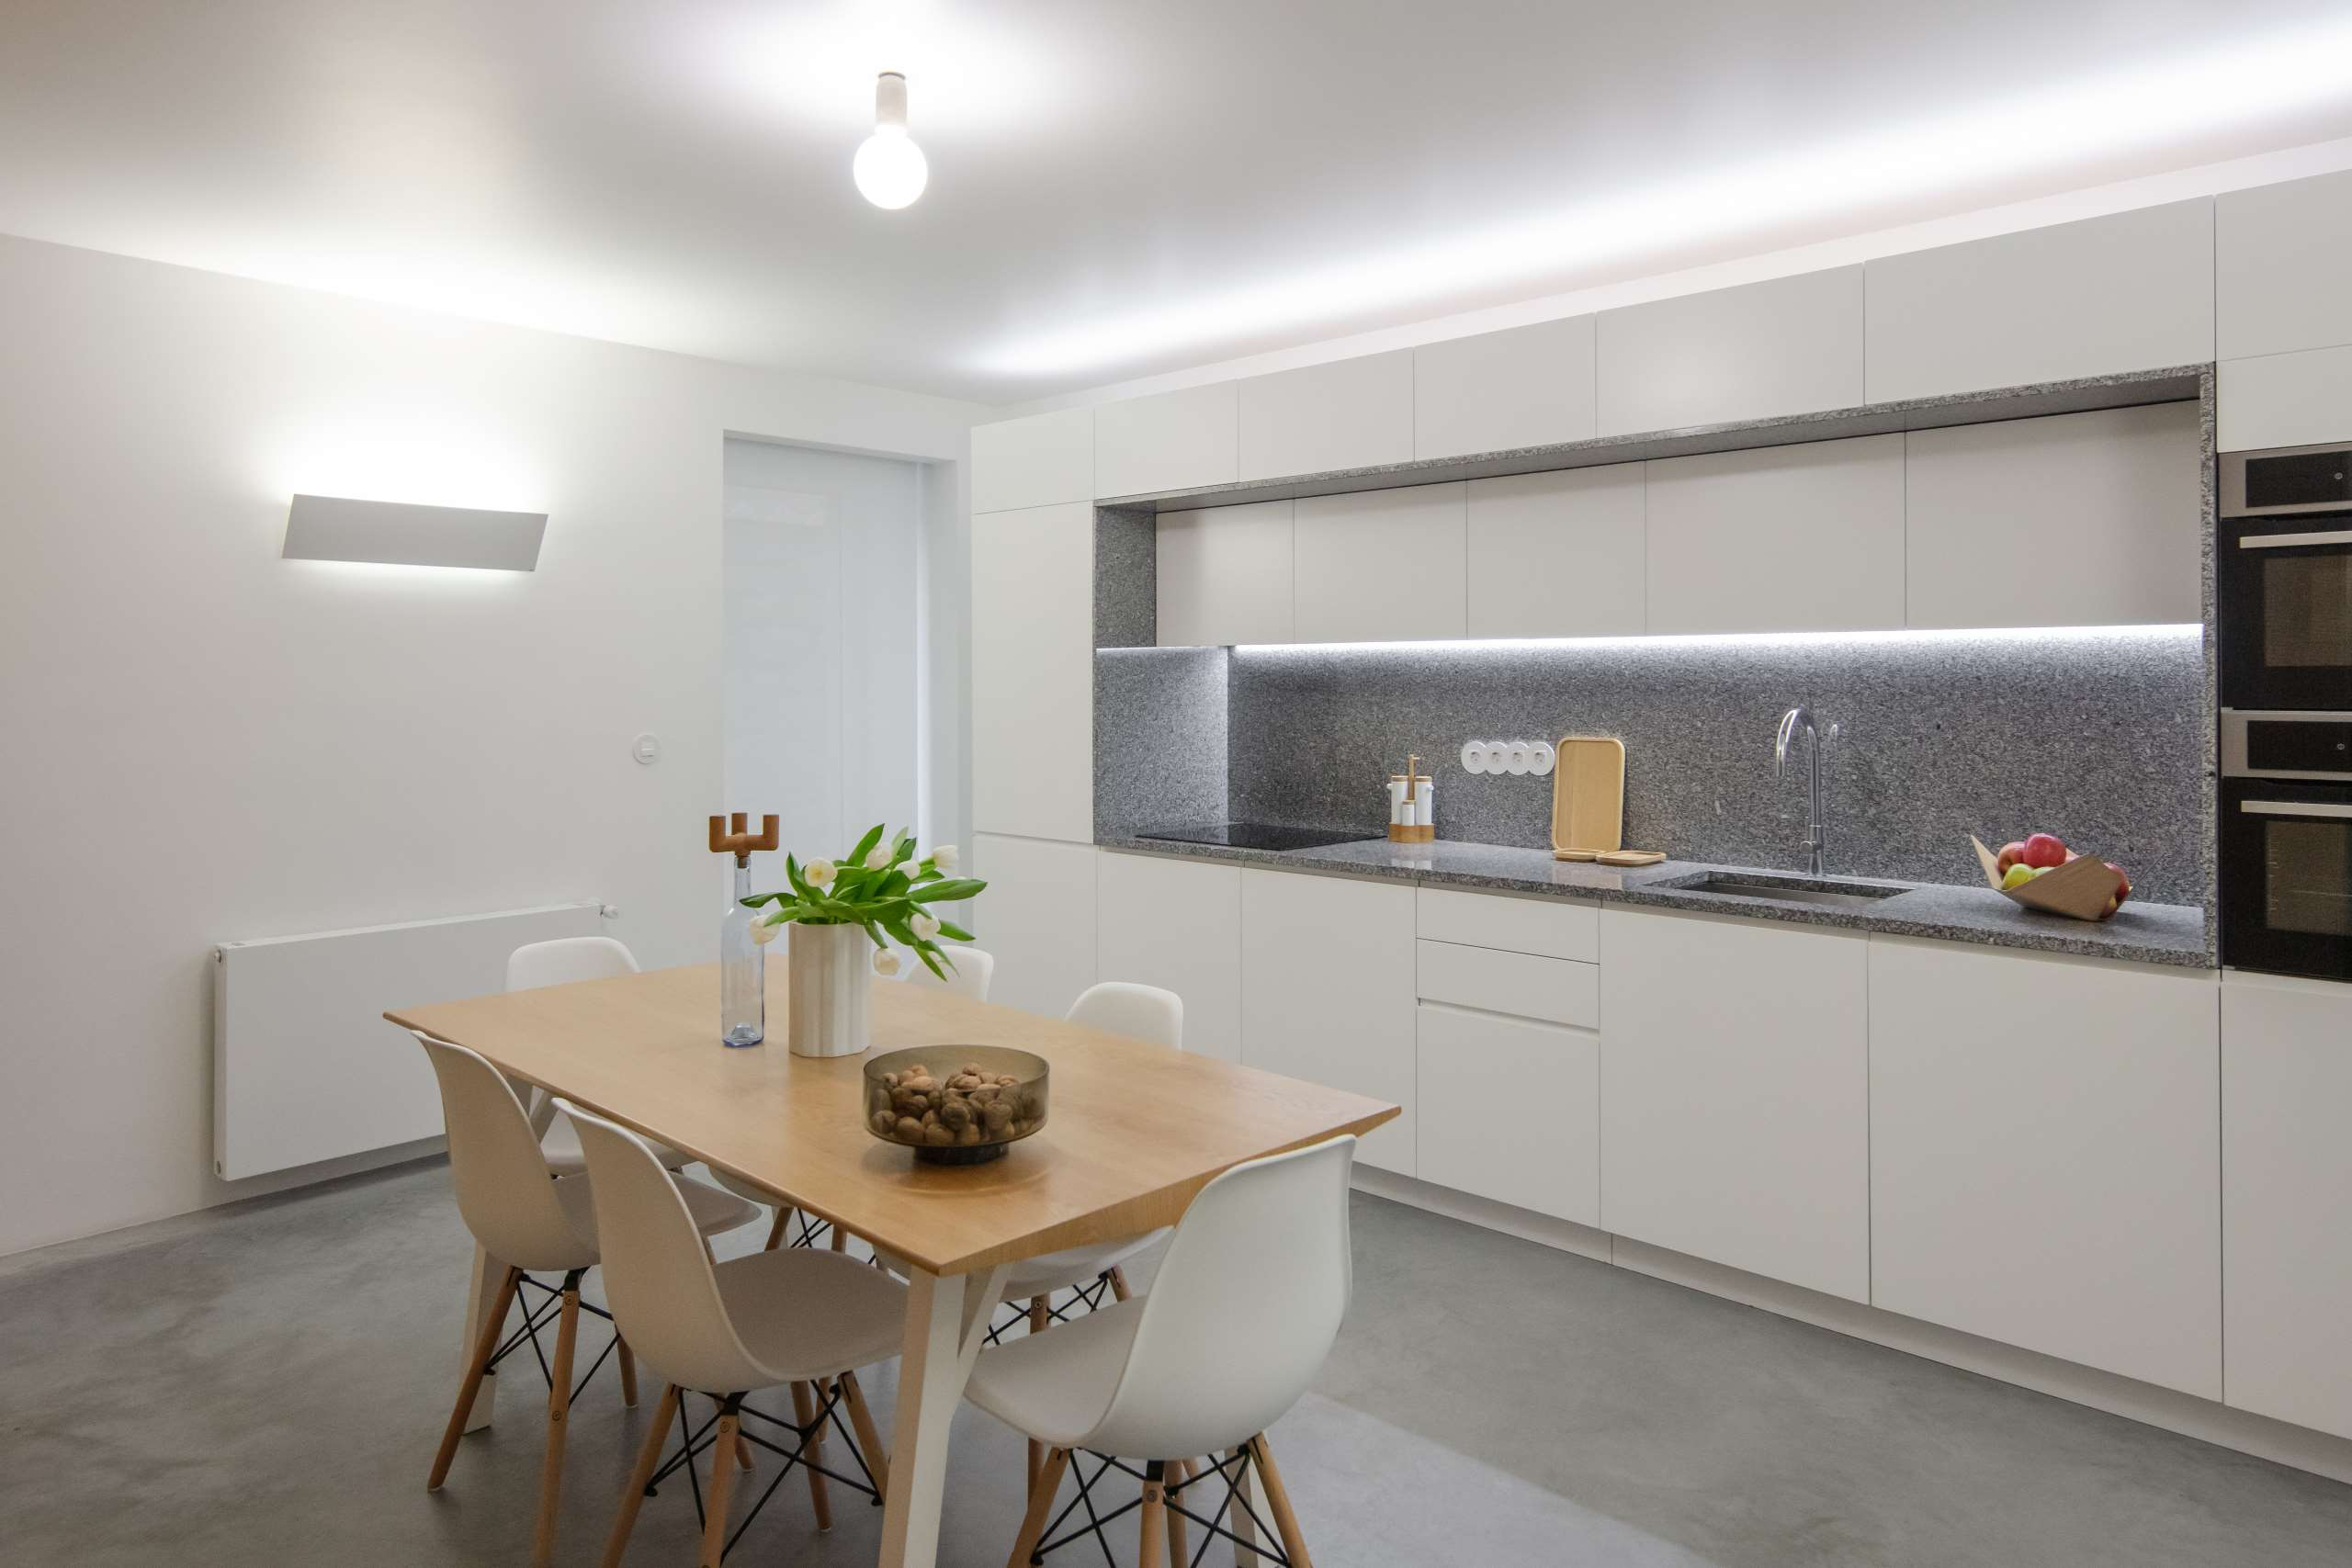 The kitchen is minimal, with a stylish dining set, sleek white cabinets and built in lights